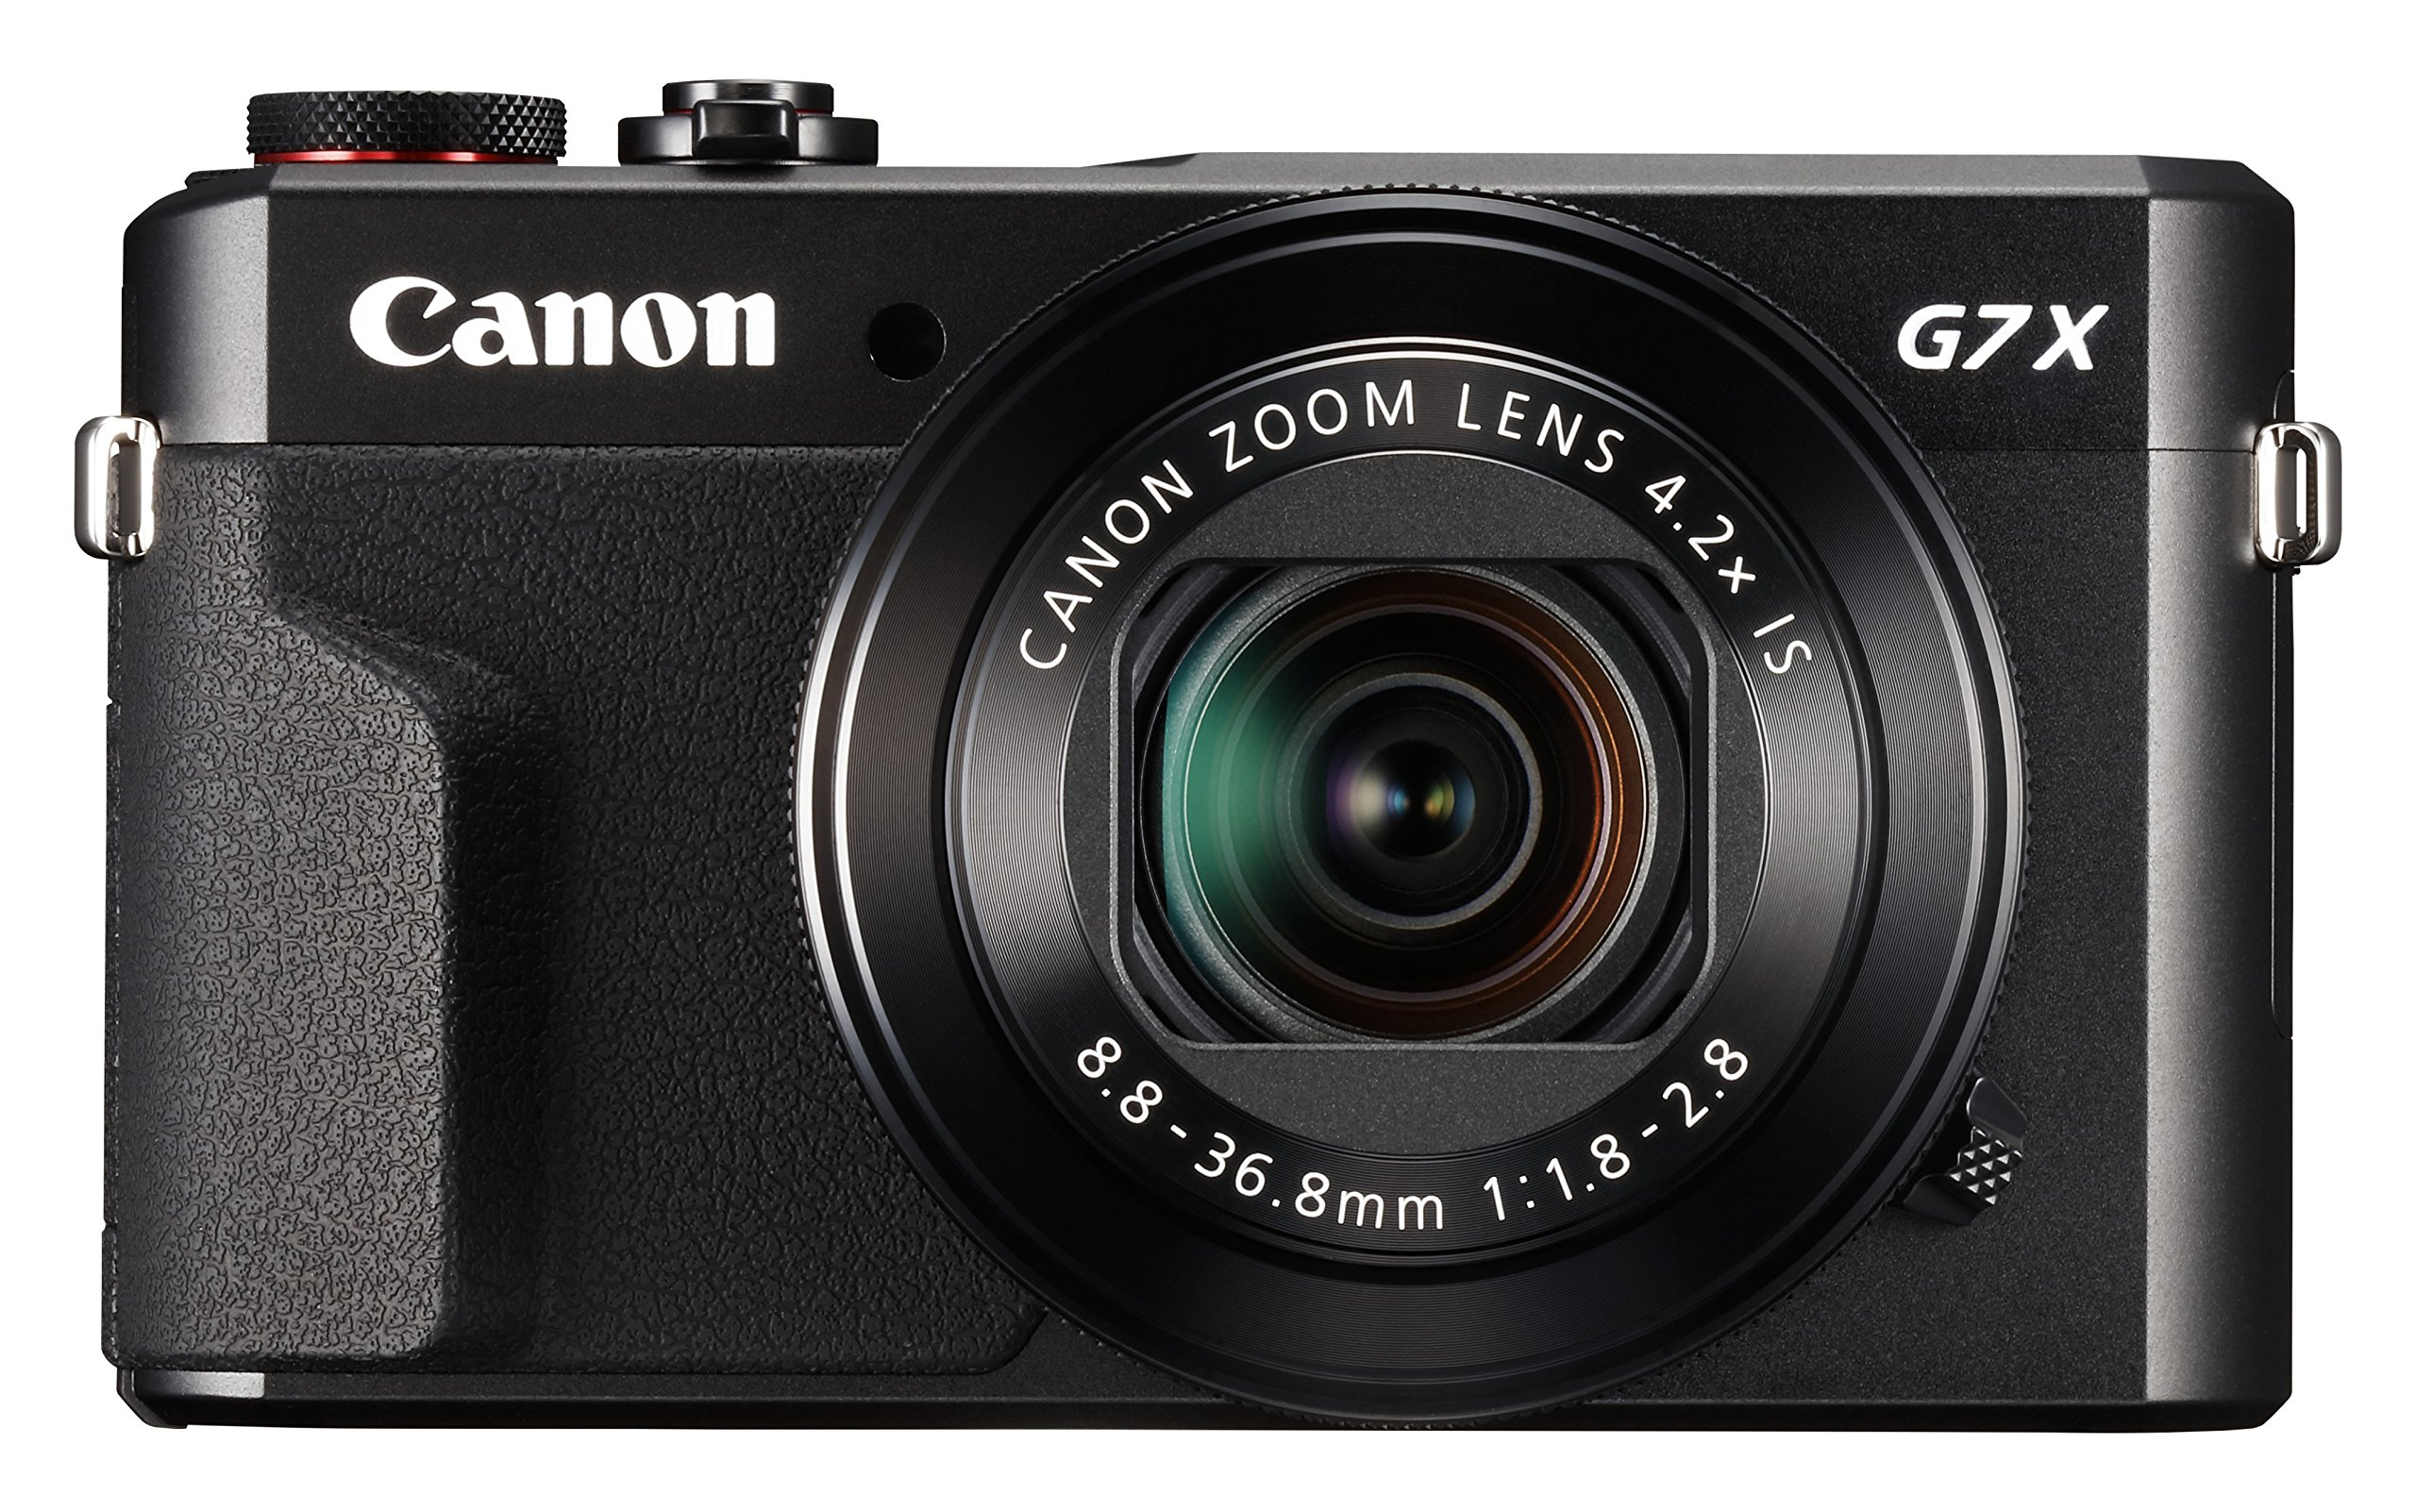 Canon Powershot G7 X Mark Ii Digital Camera Camera Vlogging Camera With Full Hd 60p Movies And Tilt Touch Screen Ideal For Vloggers And Youtube Content Creators Buy Online In